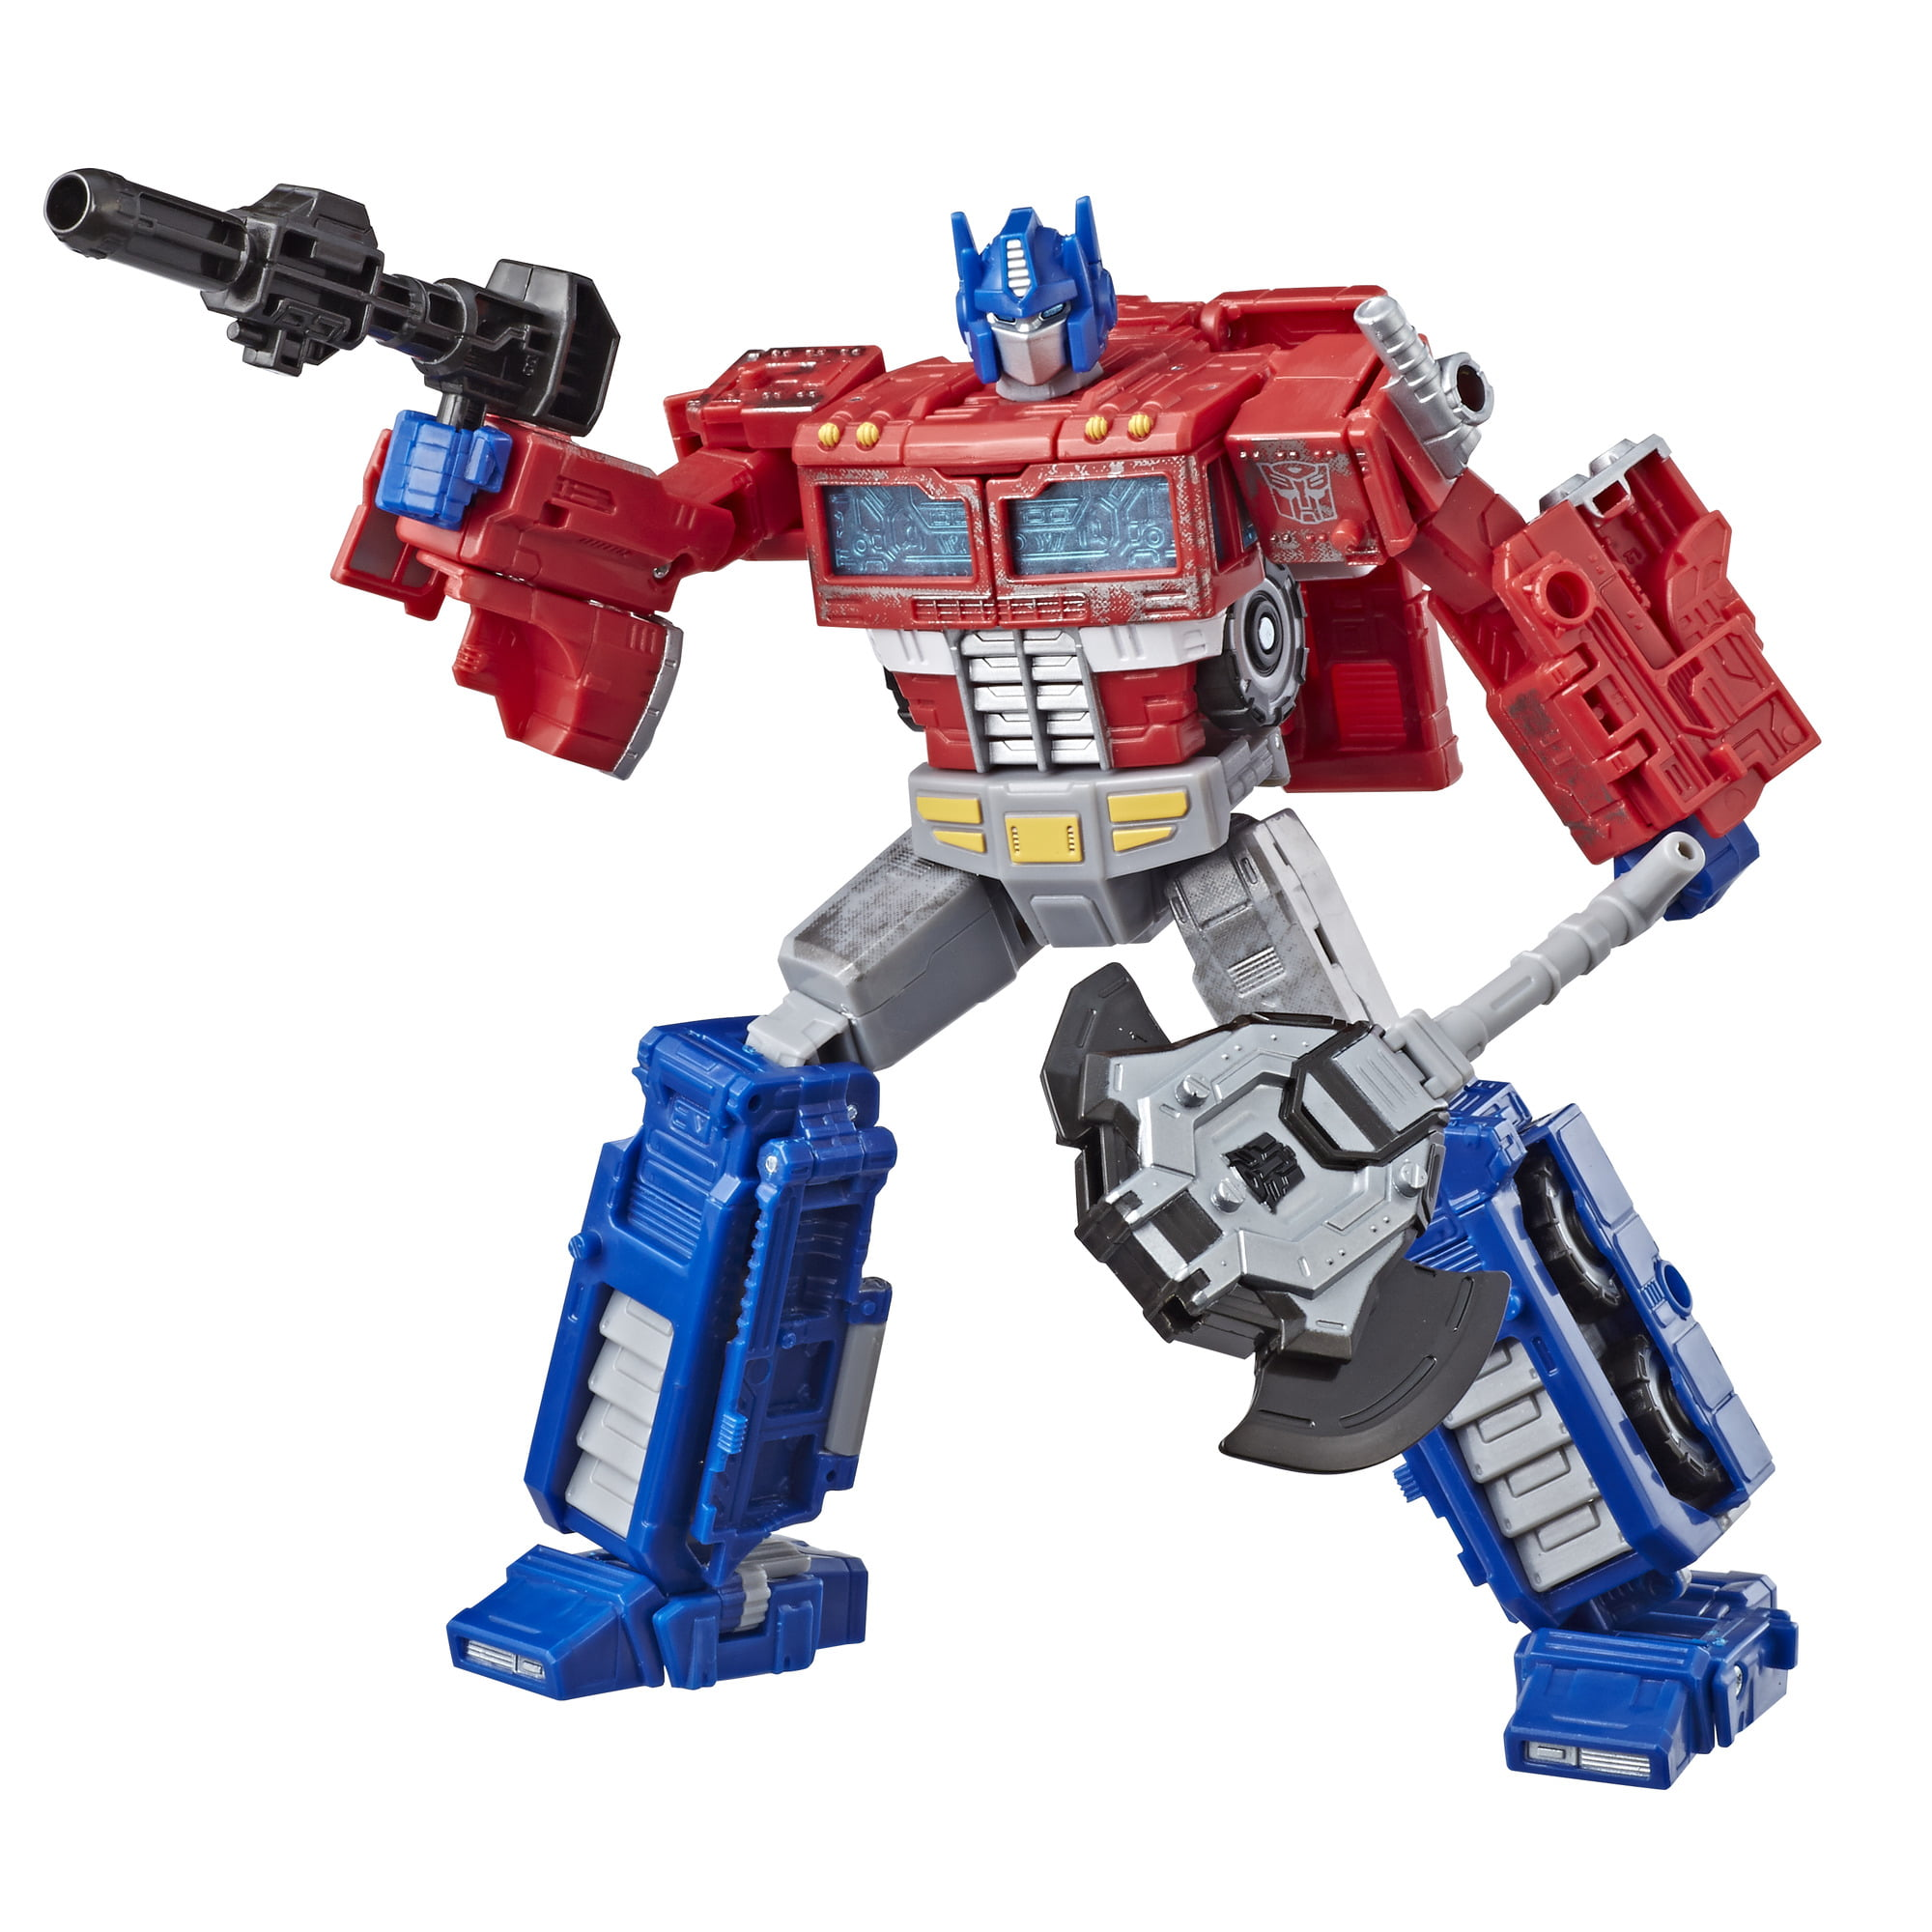 Transformers Generations Siege Voyager Class WFC-S11 Optimus Prime